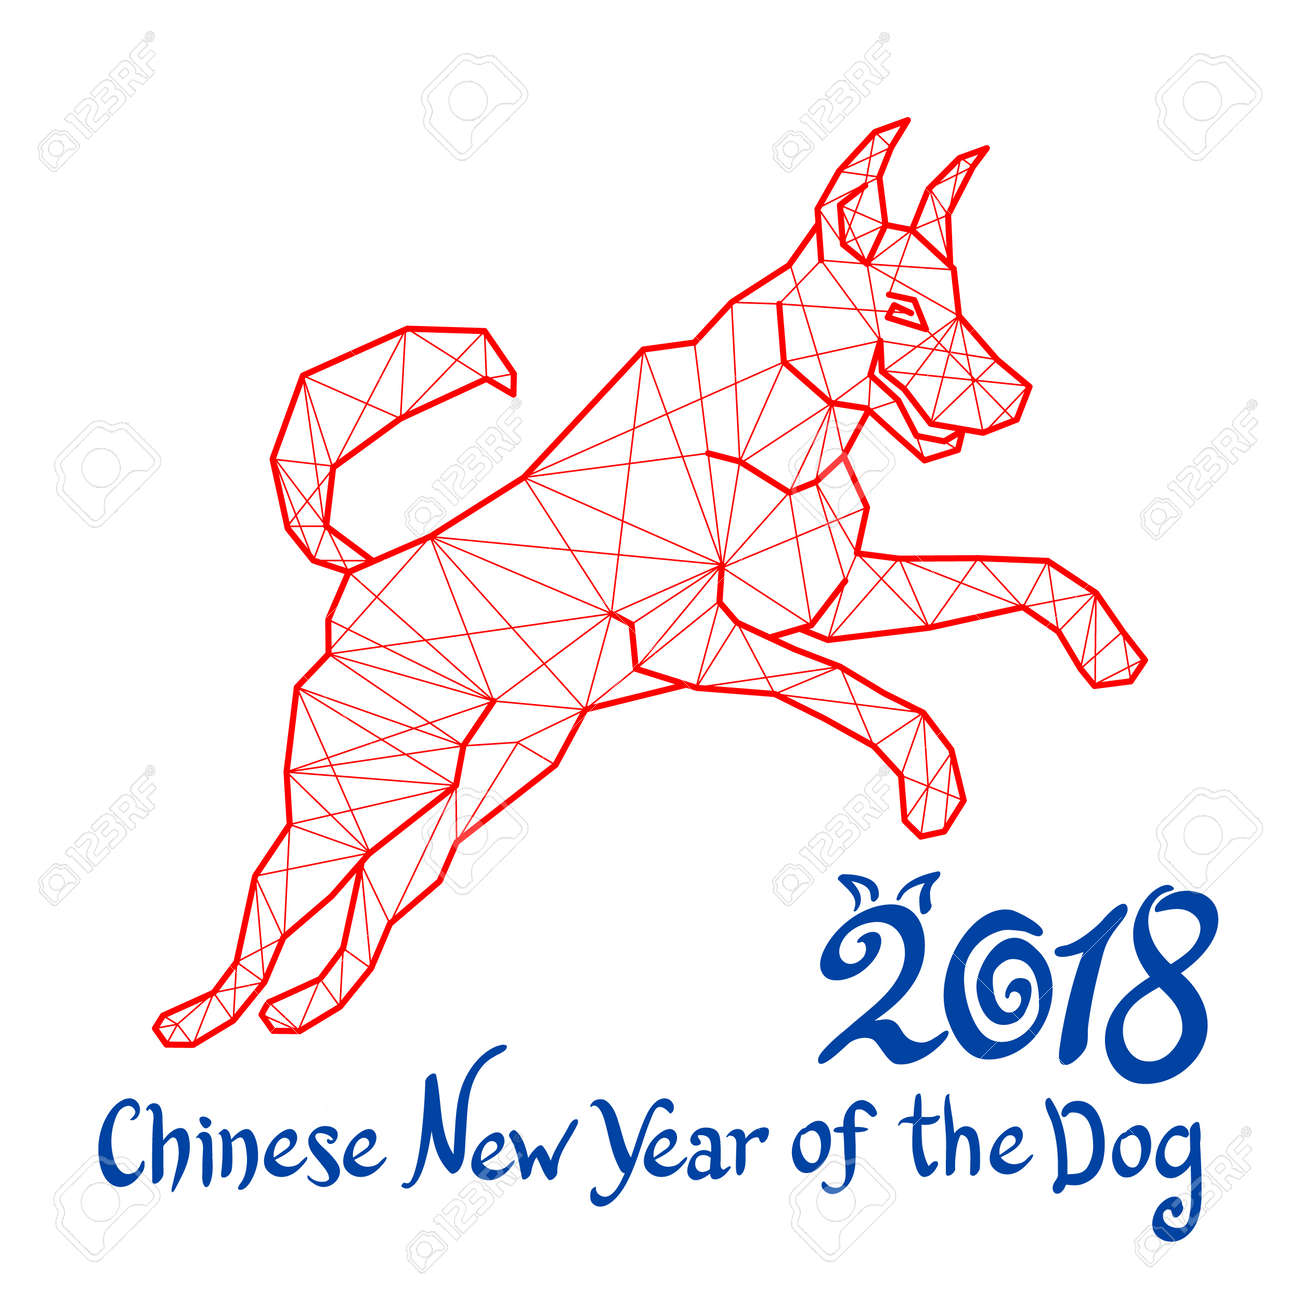 Red Dog Is A Symbol 2018 Chinese New Year Of The Dog Silhouette